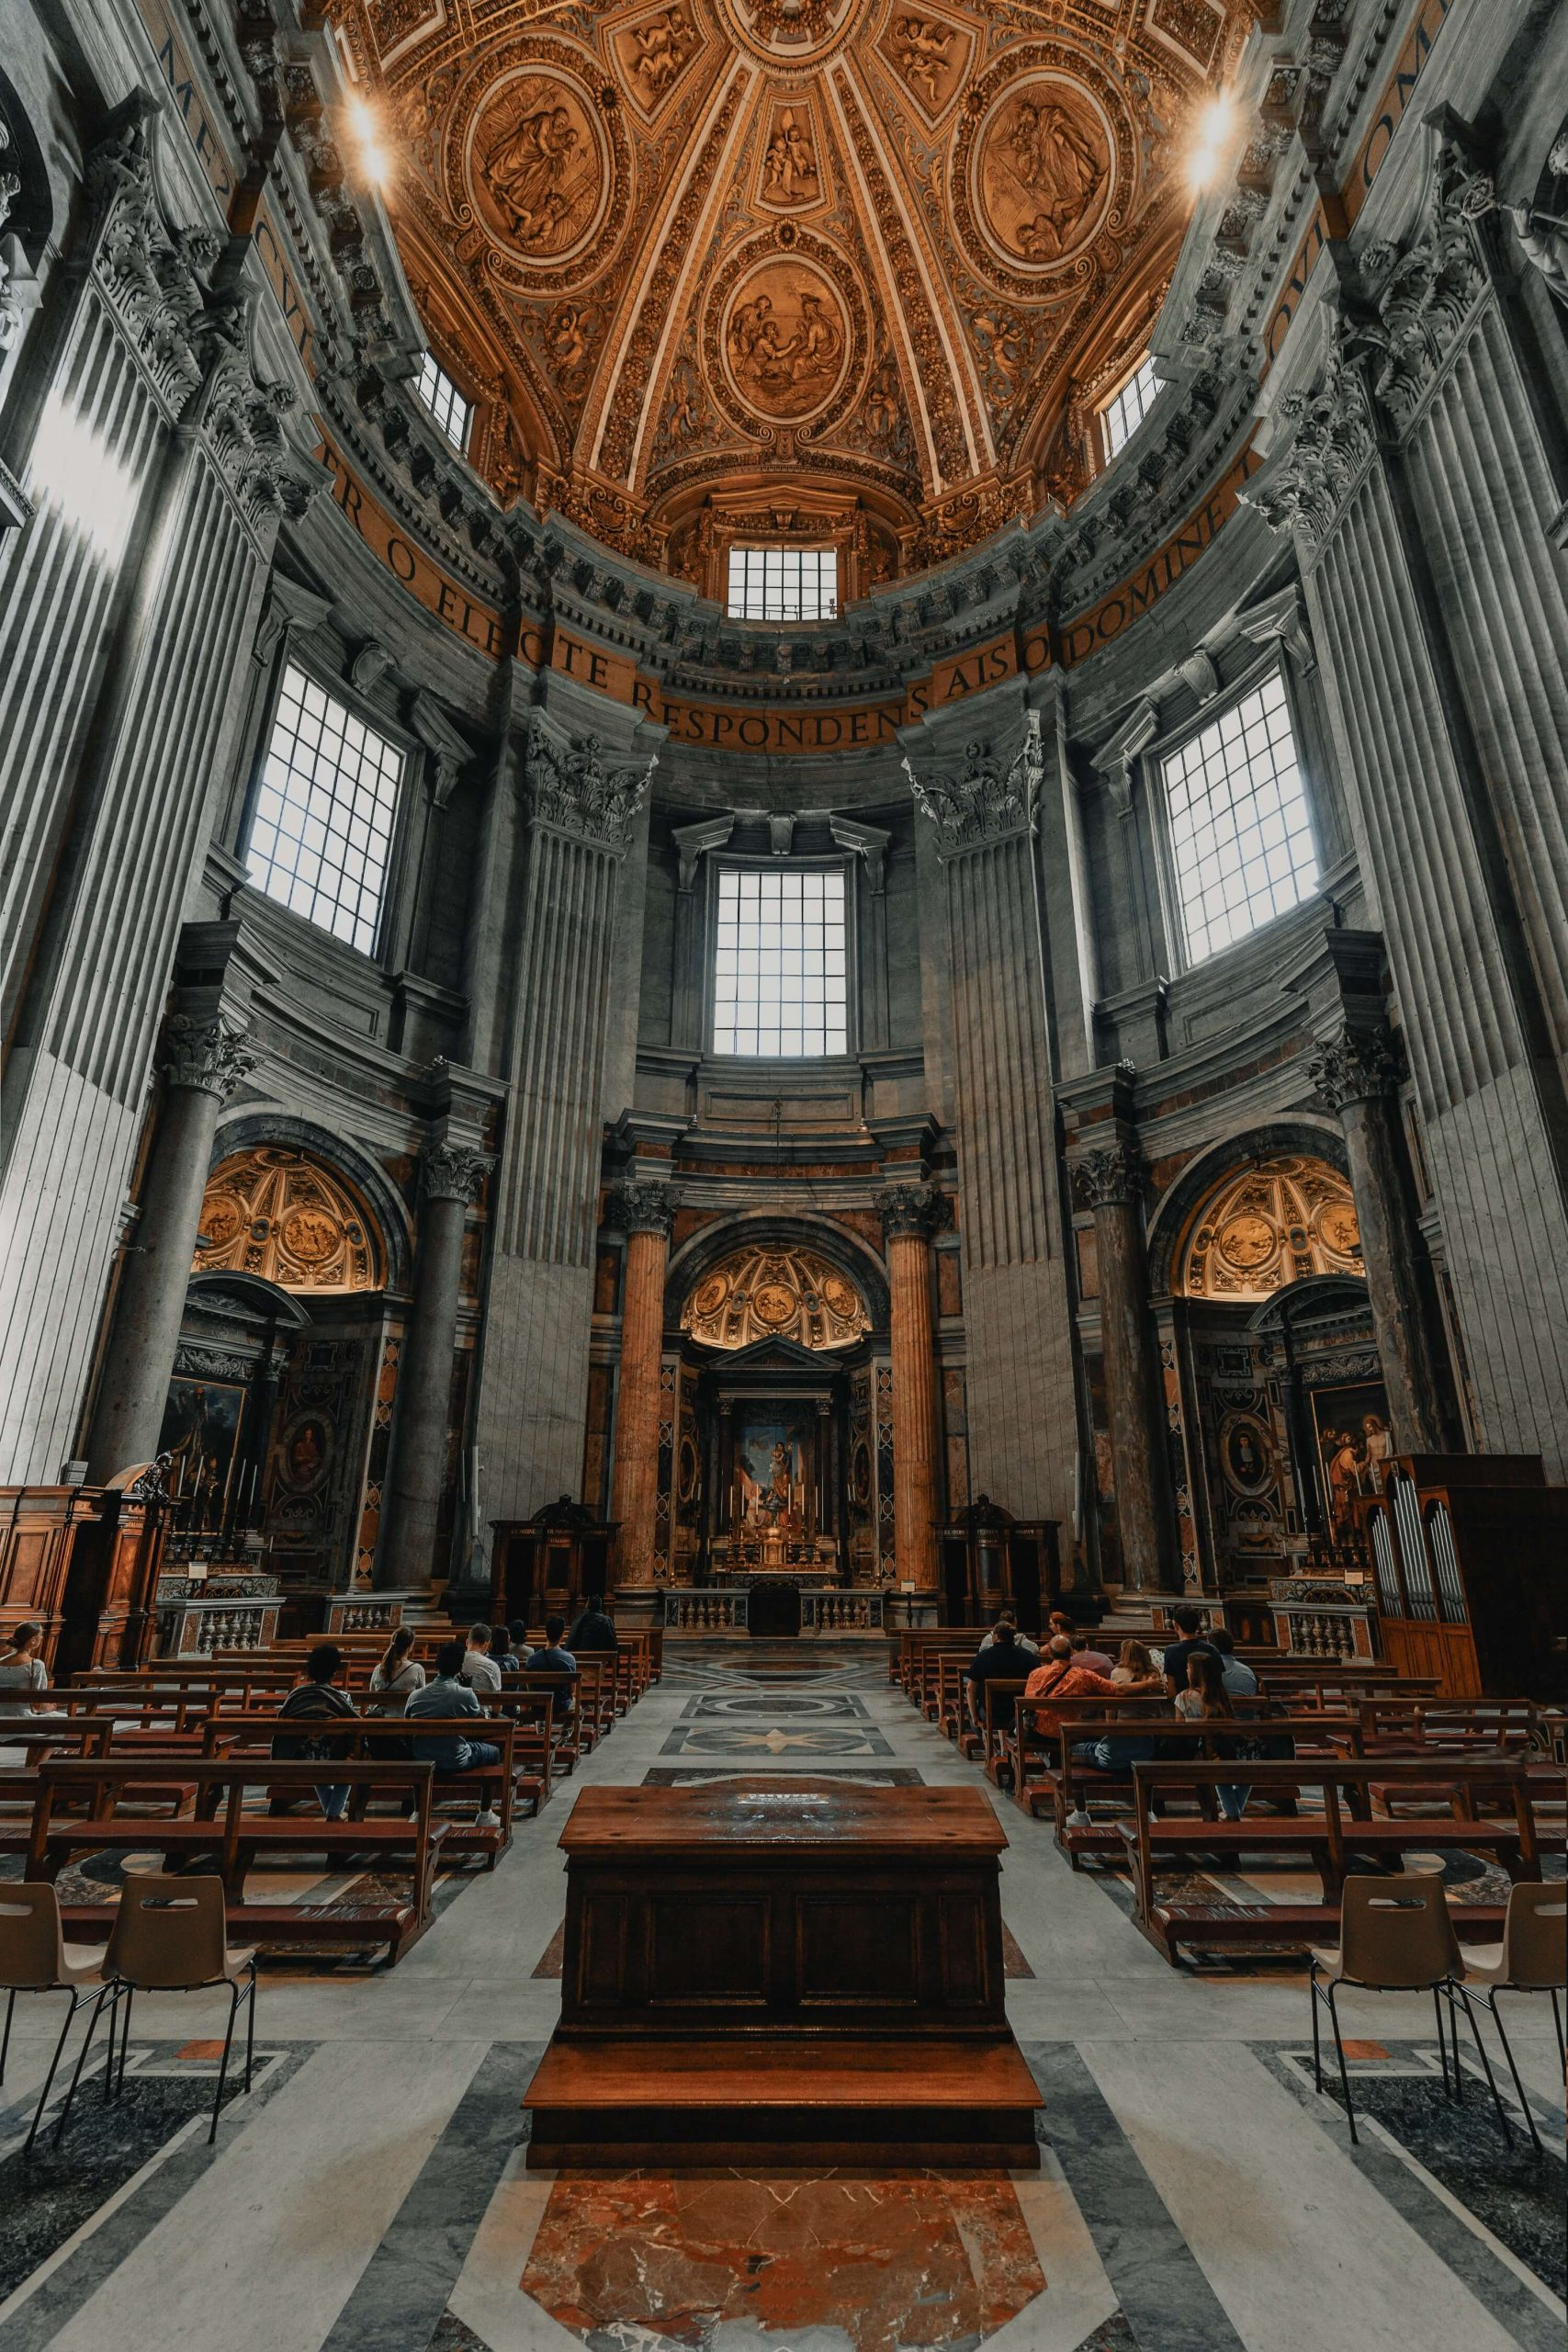 Basilica: Know The Difference Between Church and Basilica